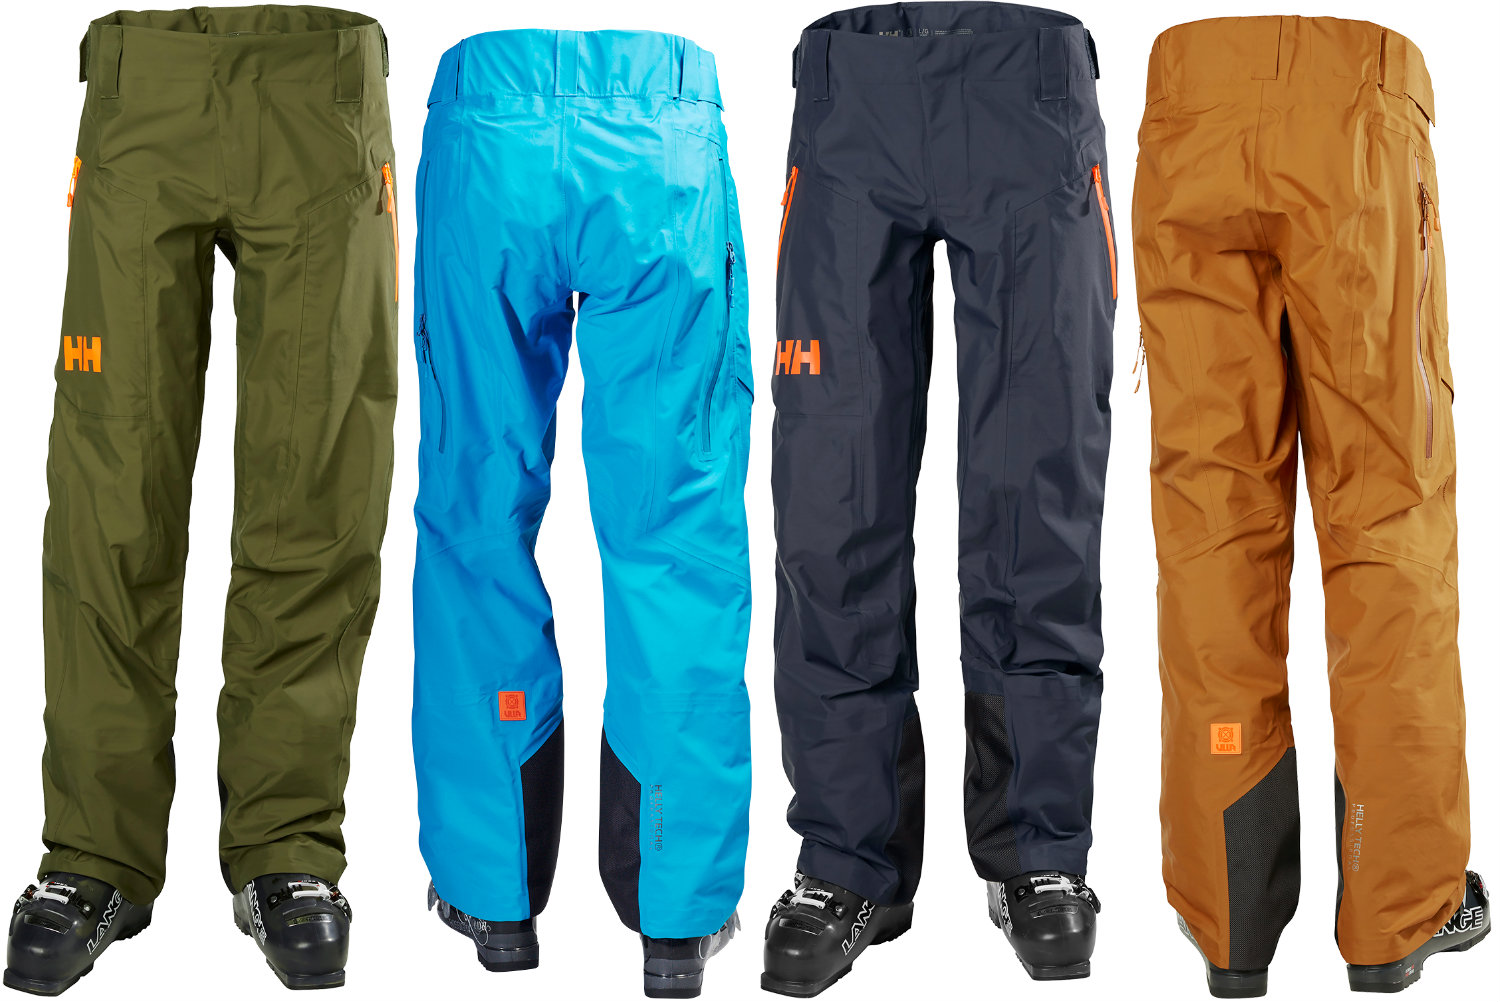 Helly Hansen Elevate Shell Pant review Freeride ski trousers